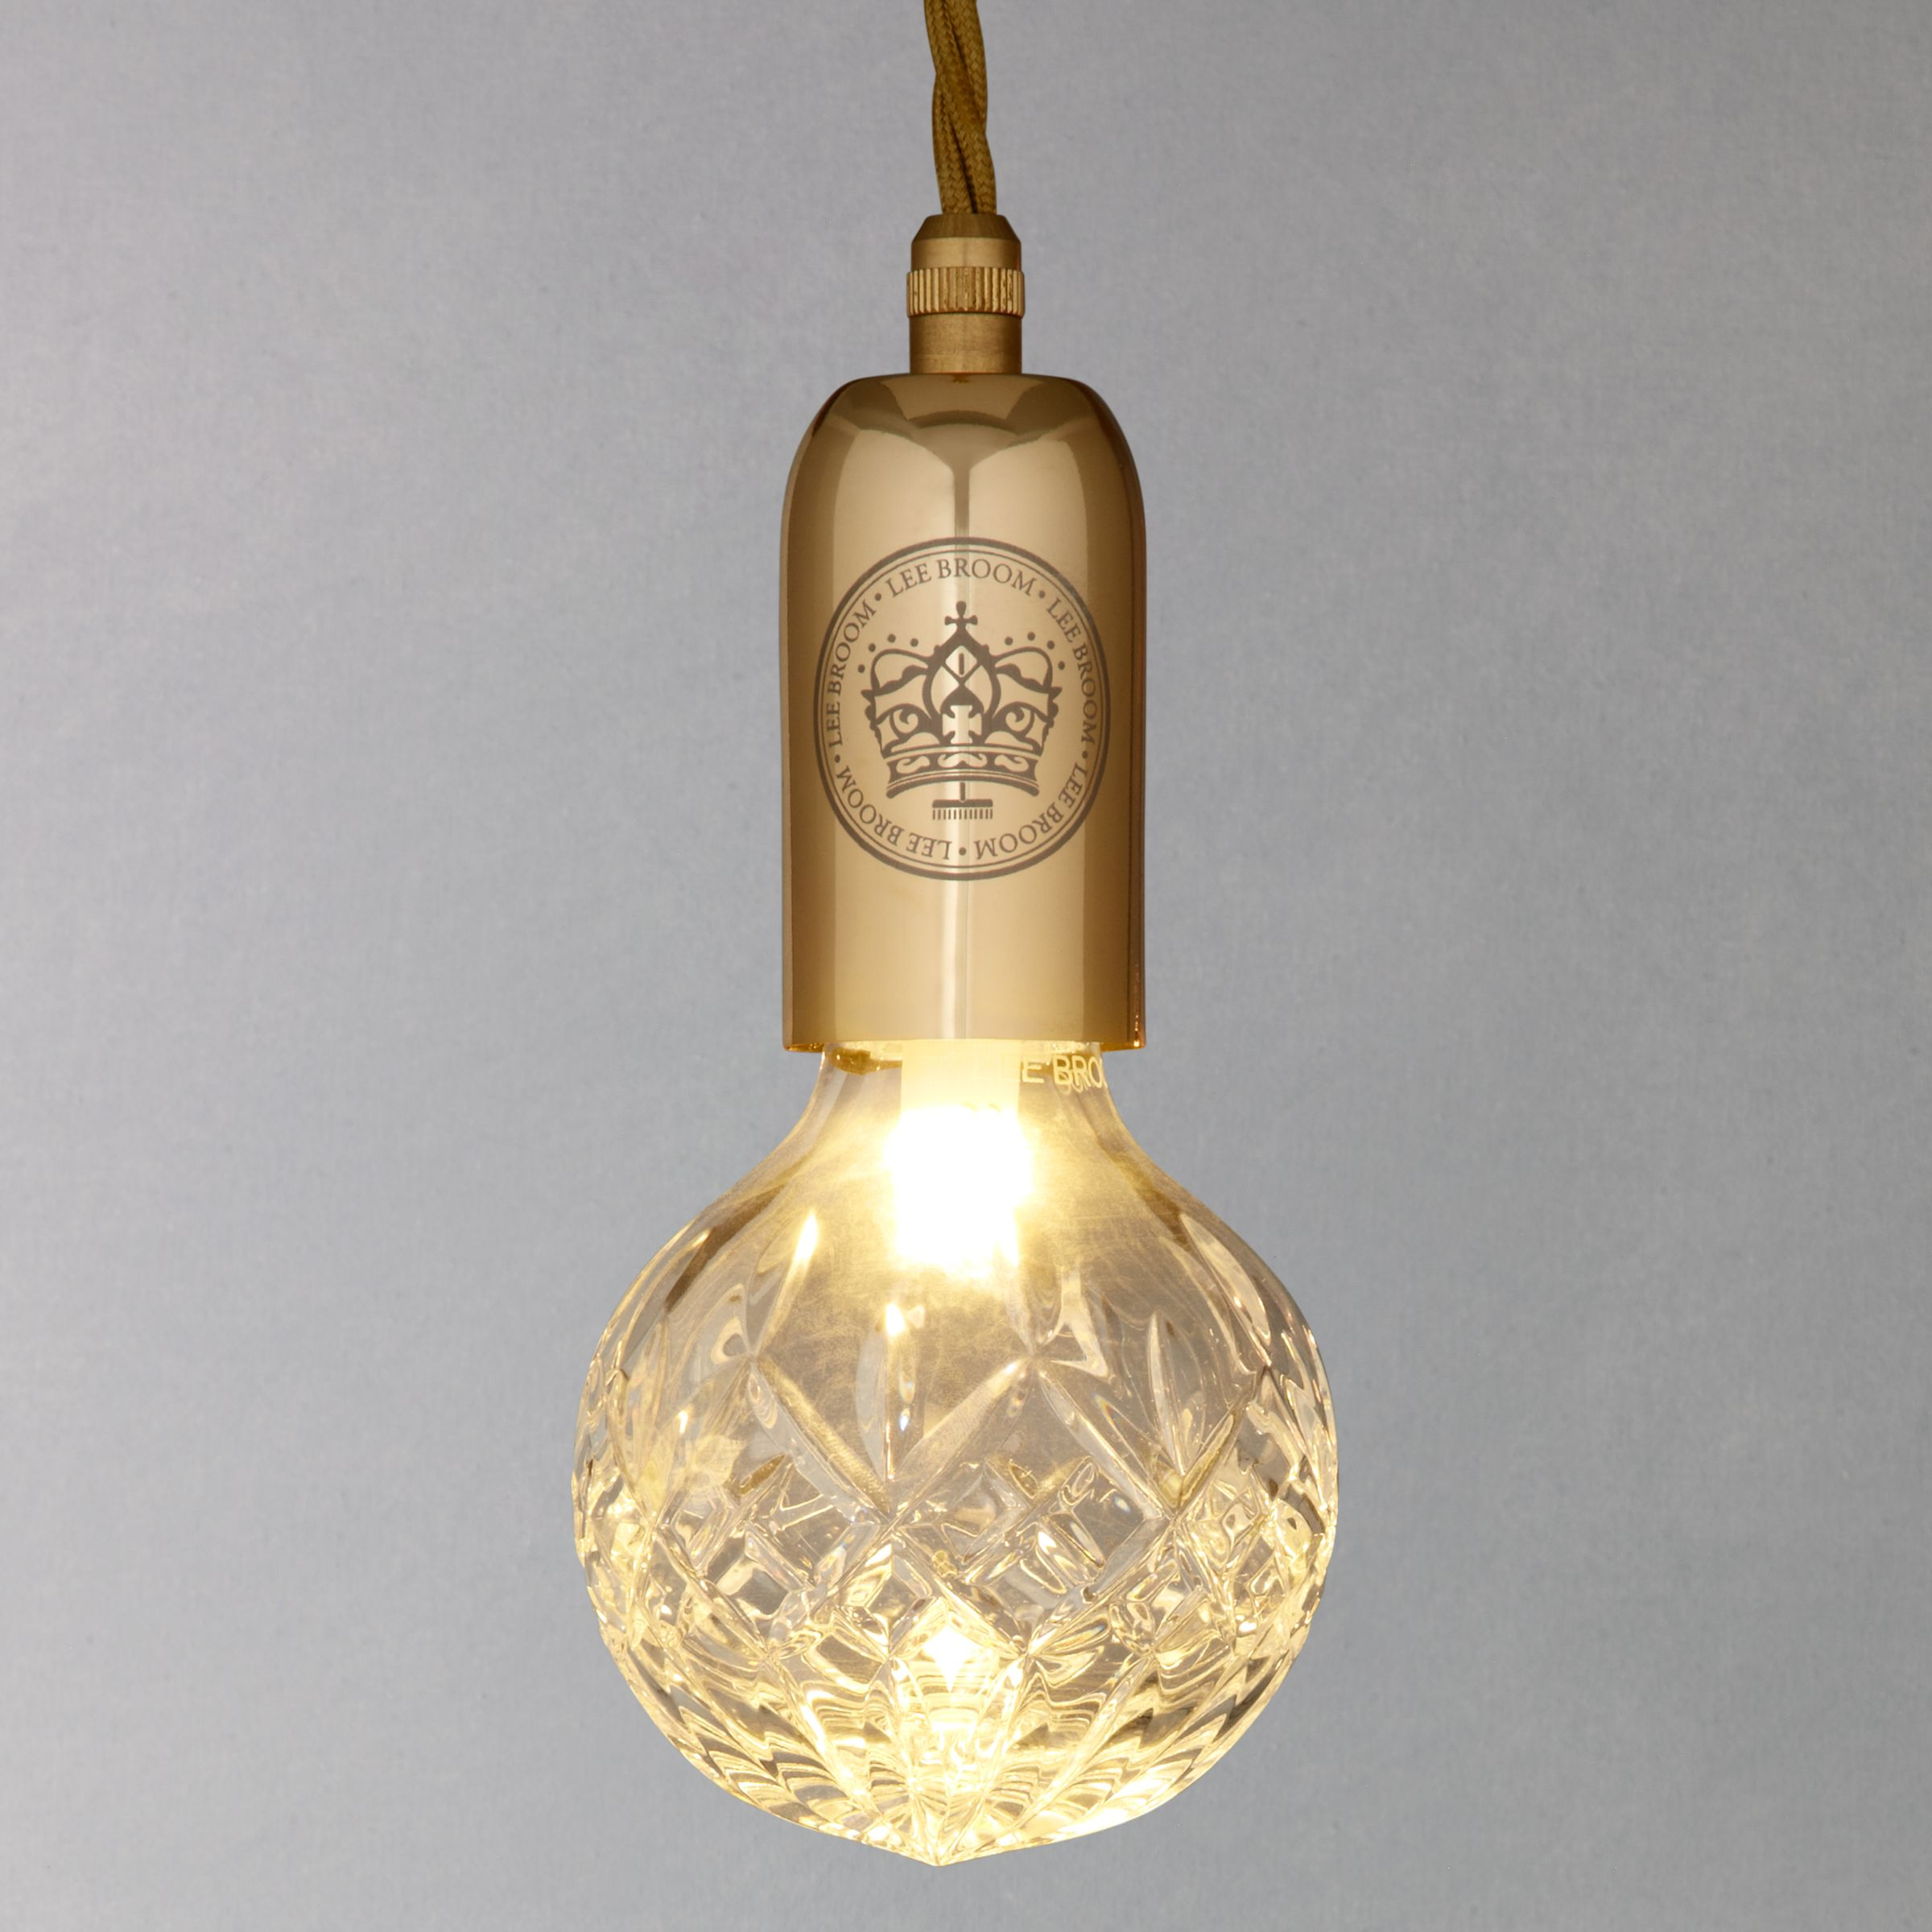 Lee Broom Lee Broom Crystal 24 Carat Gold Bulb Pendant